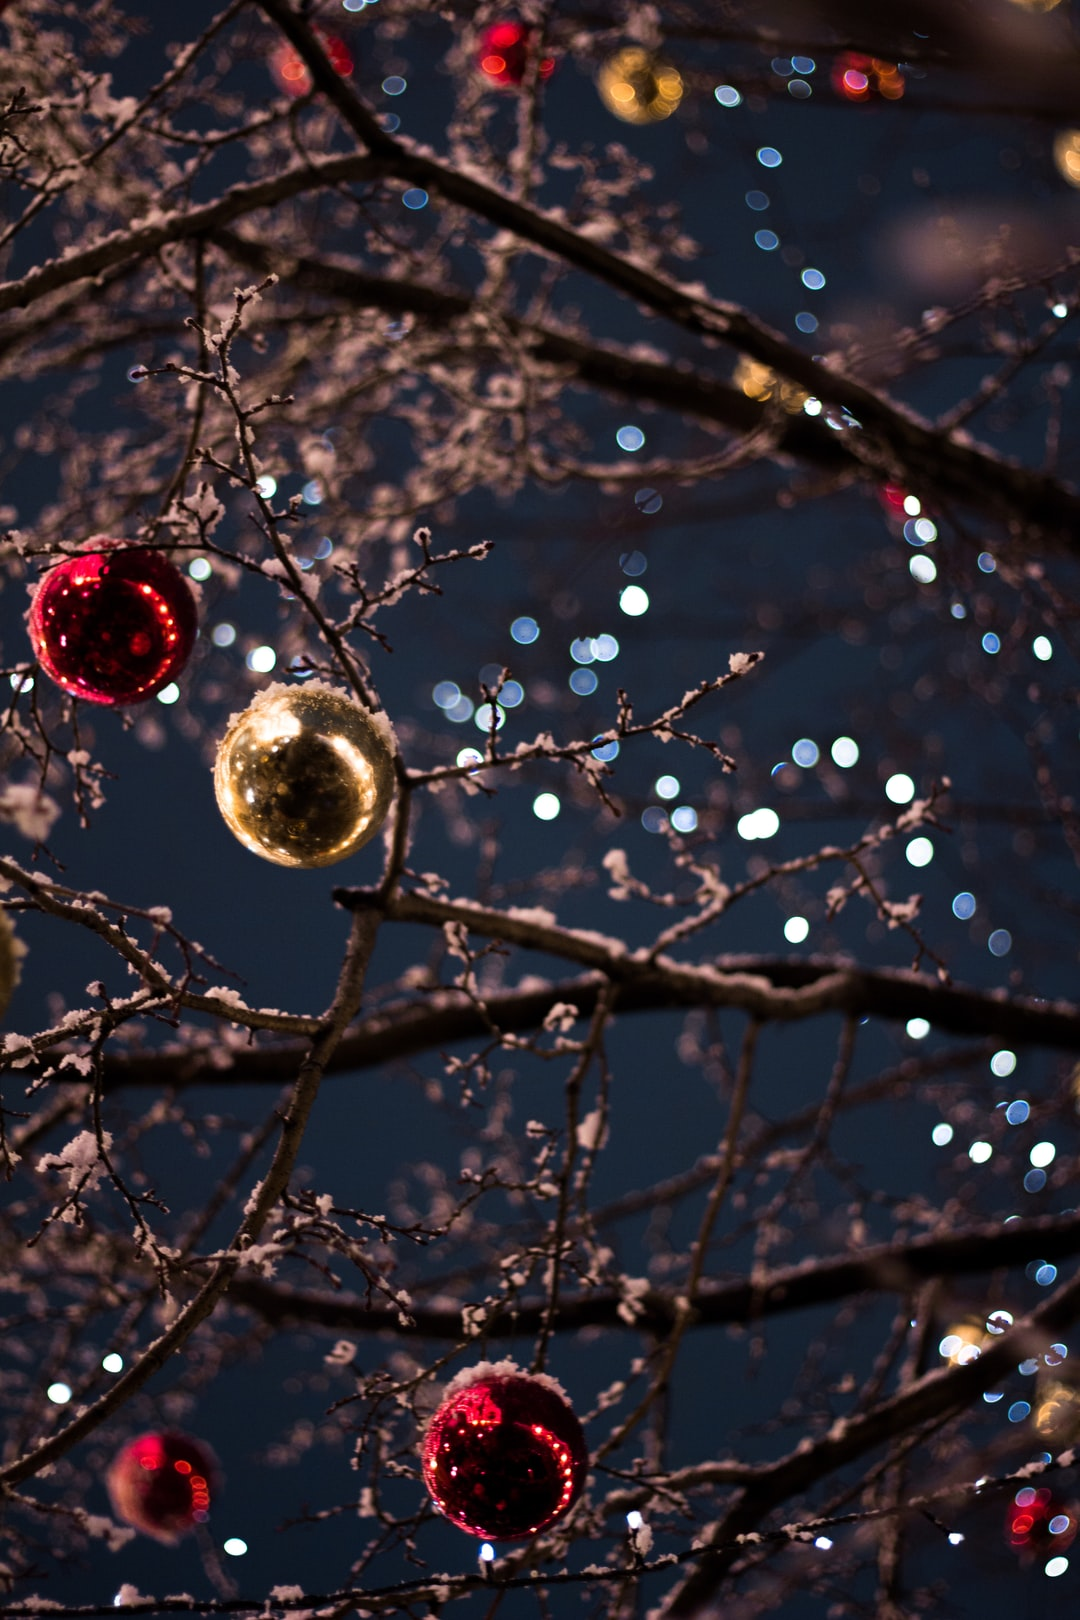 900 christmas background images download hd backgrounds on unsplash unsplash